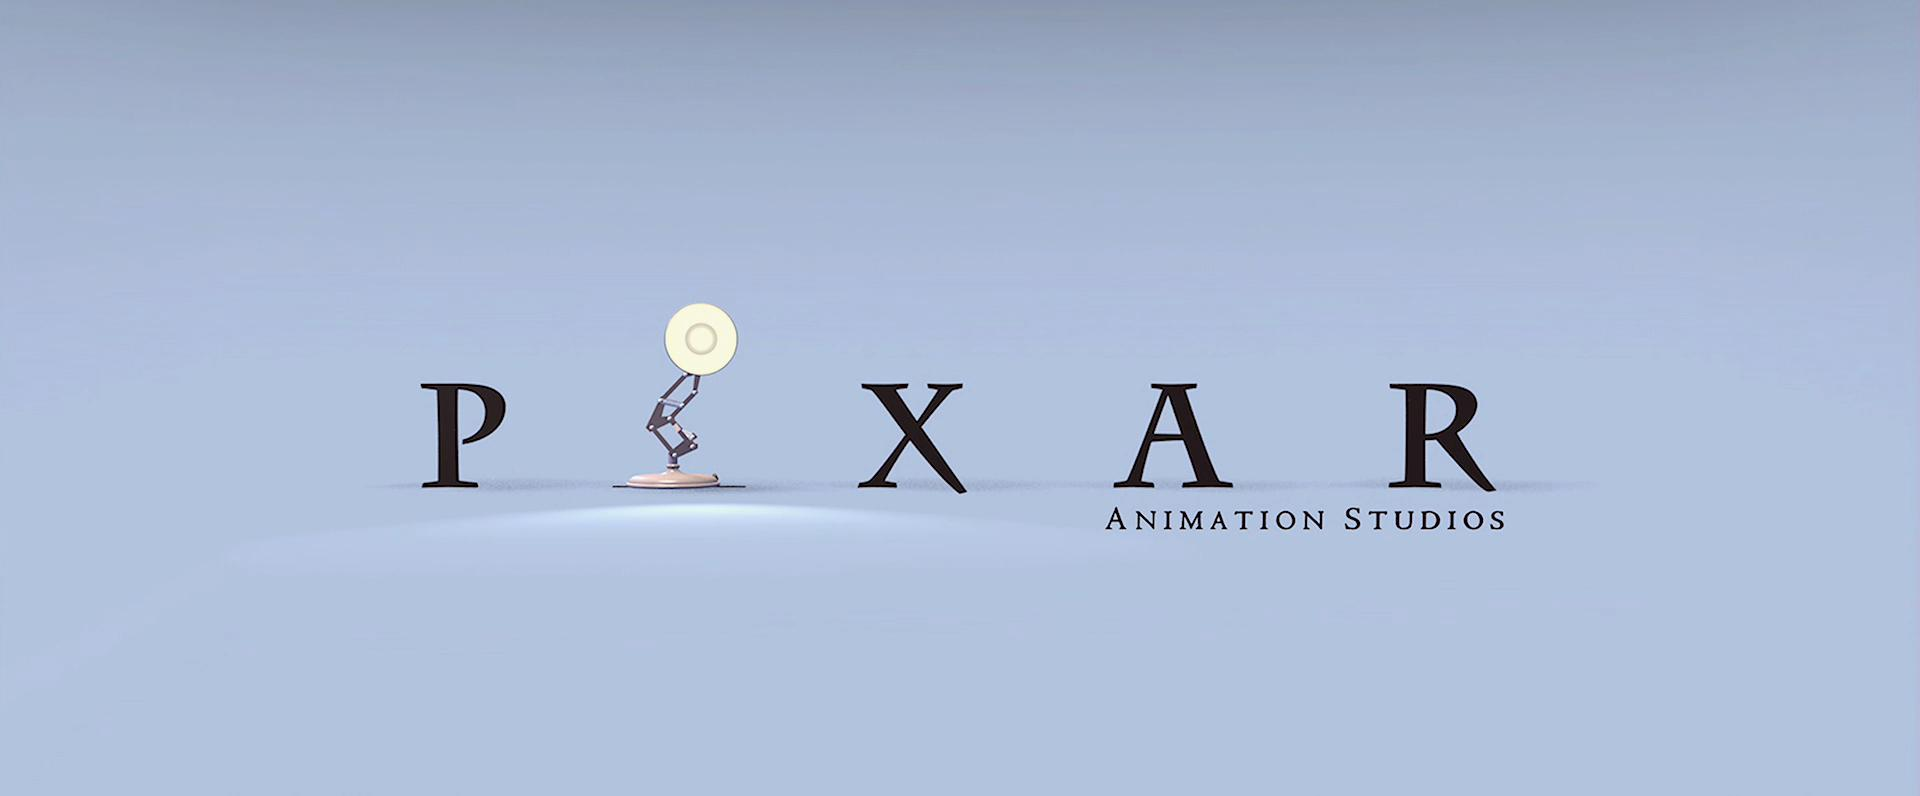 Pixar Intro Gif B Ranking Pixar K Andb Hype The Movies